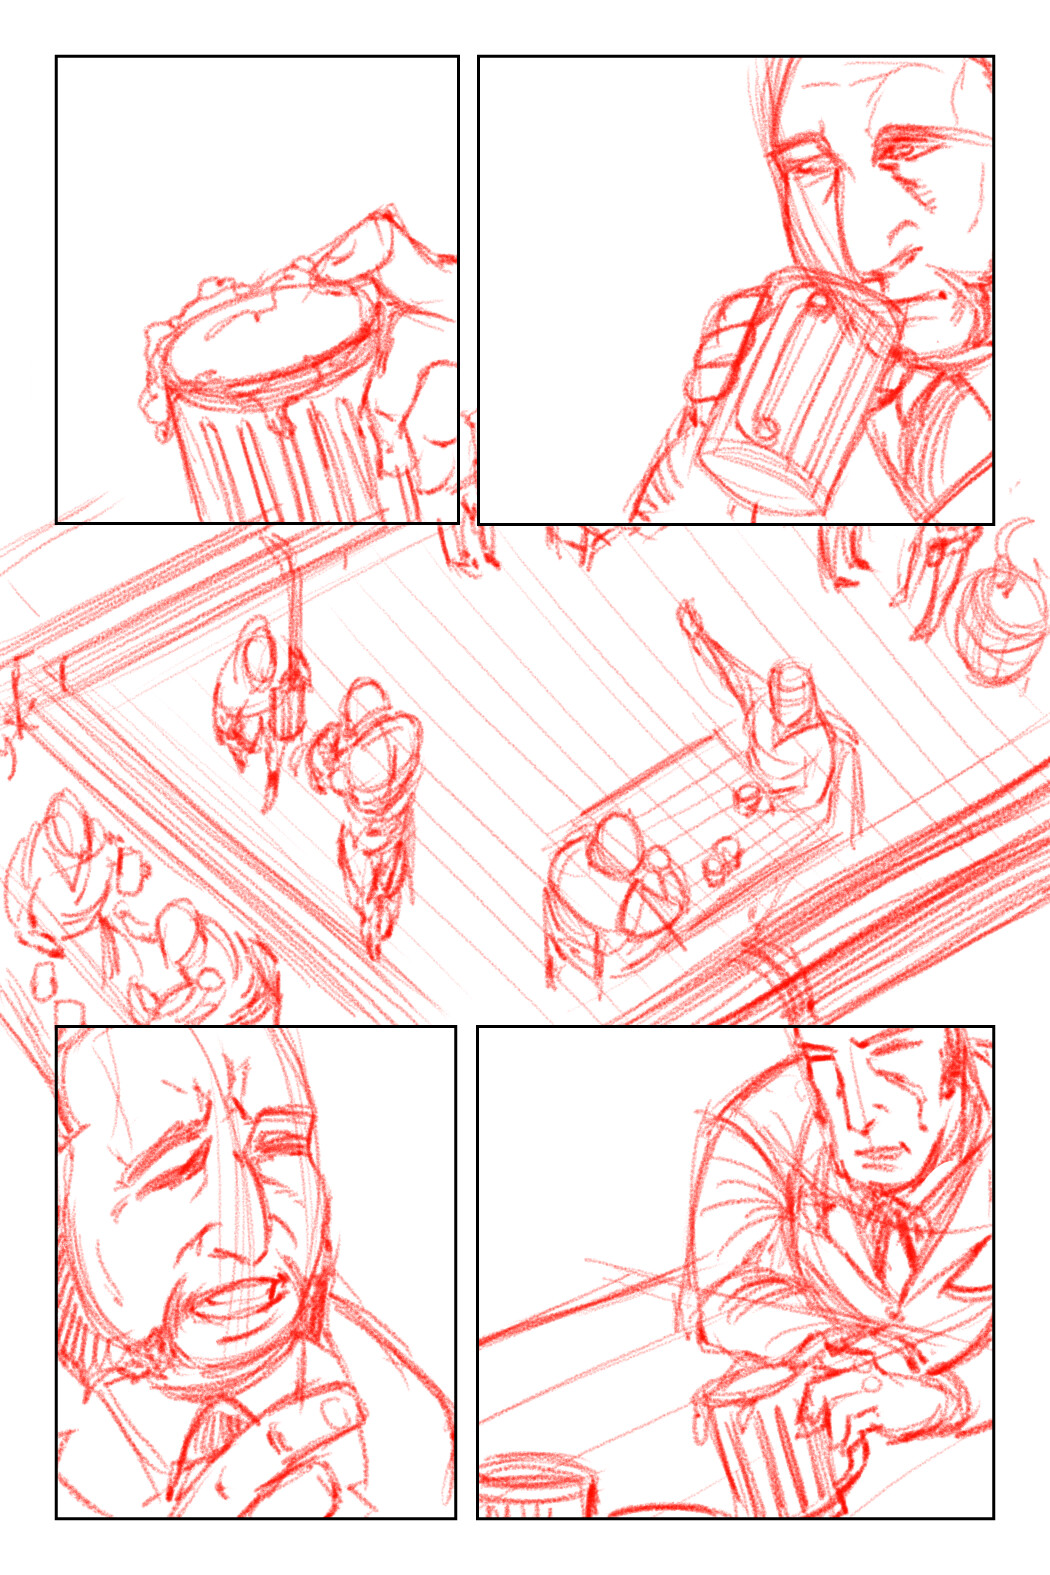 05-More Pencils of Page 3